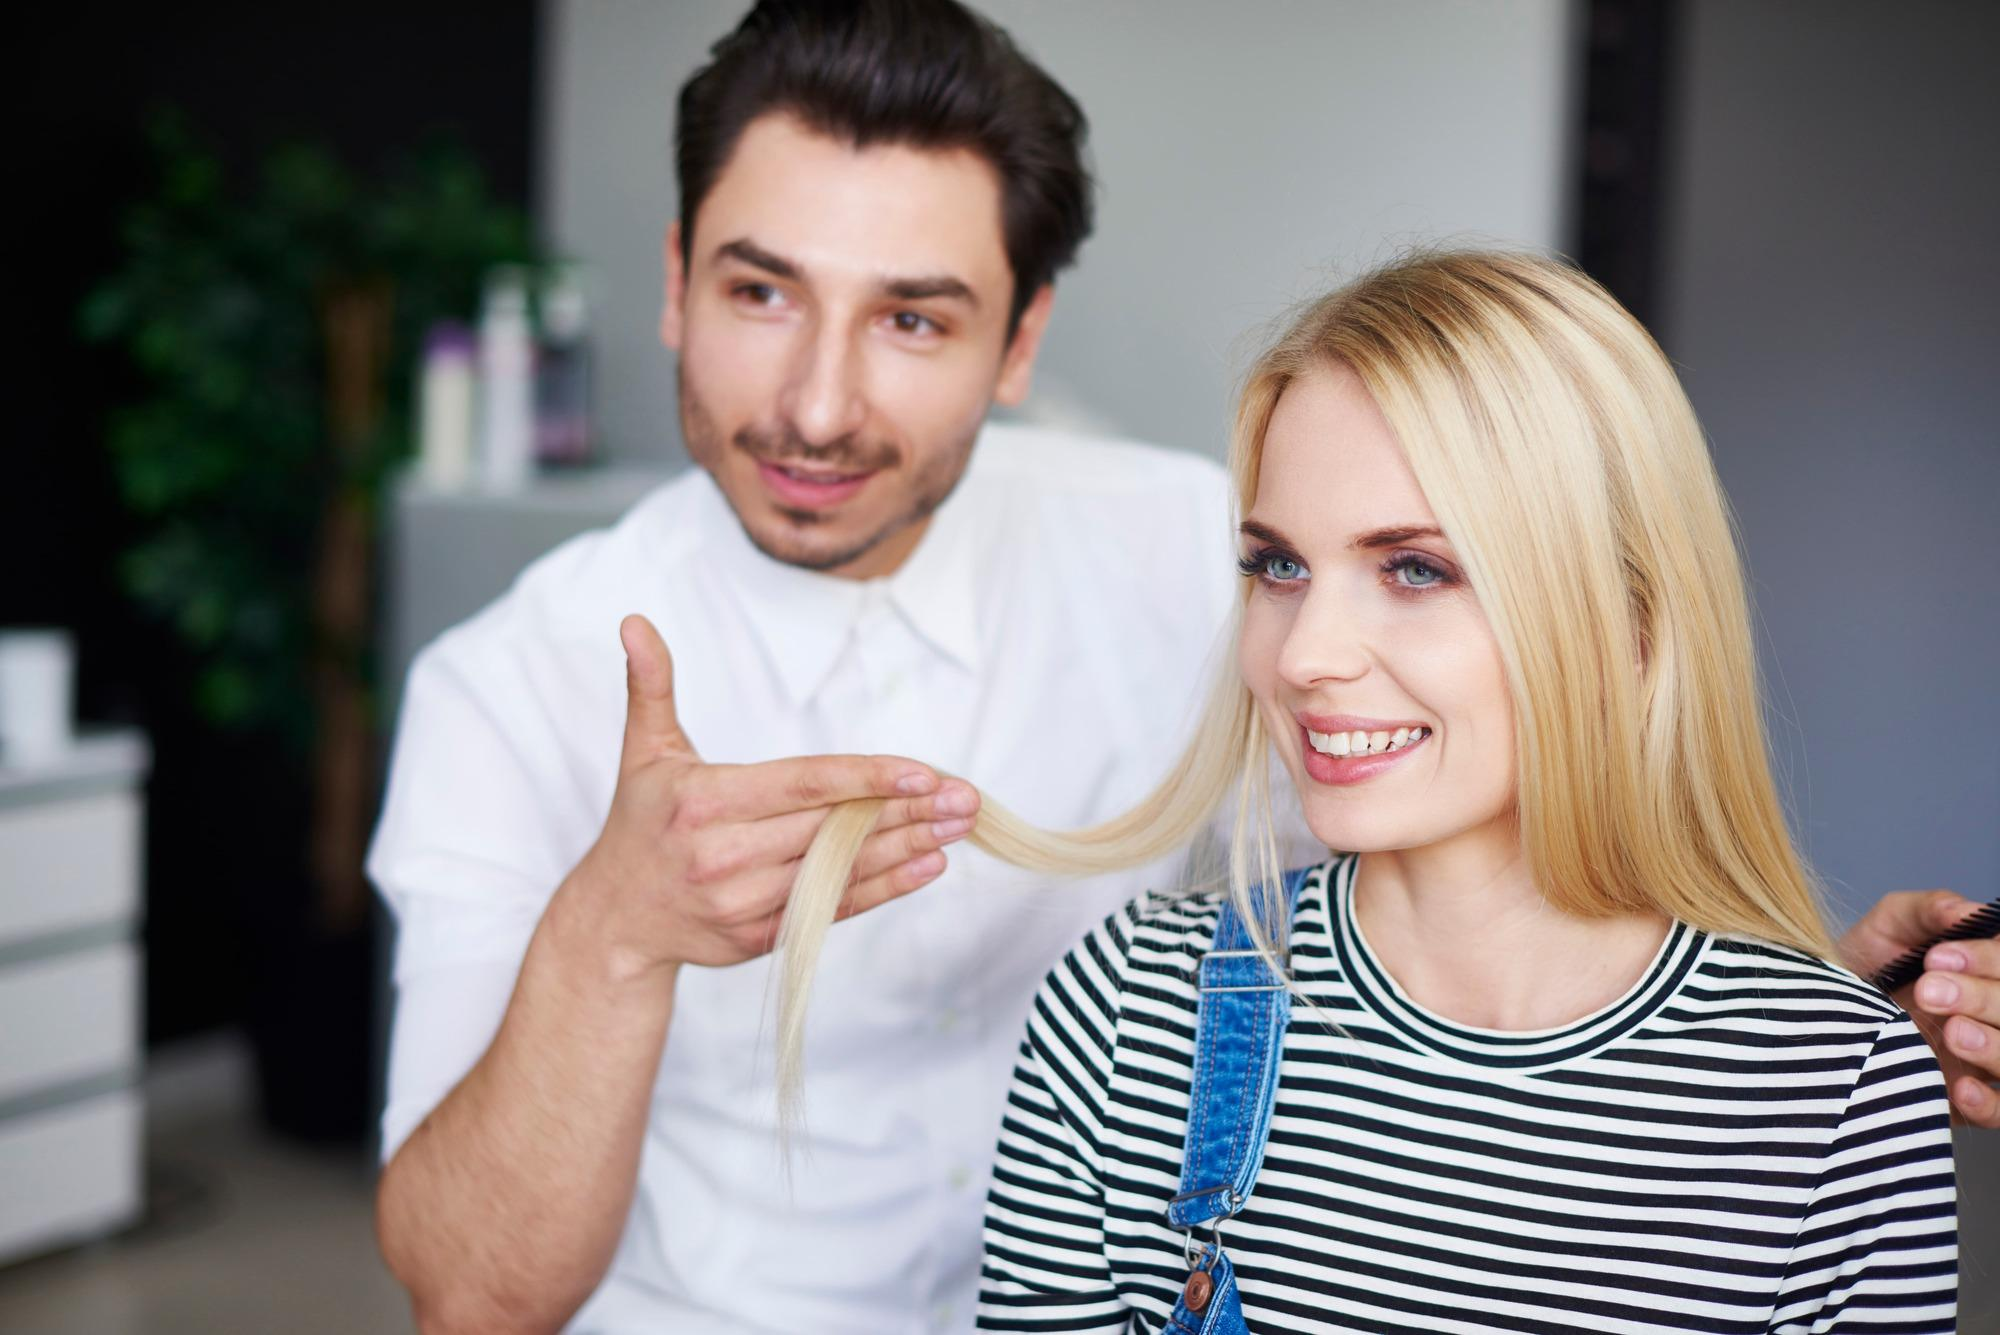 woman getting her hair assessed by a hair stylist